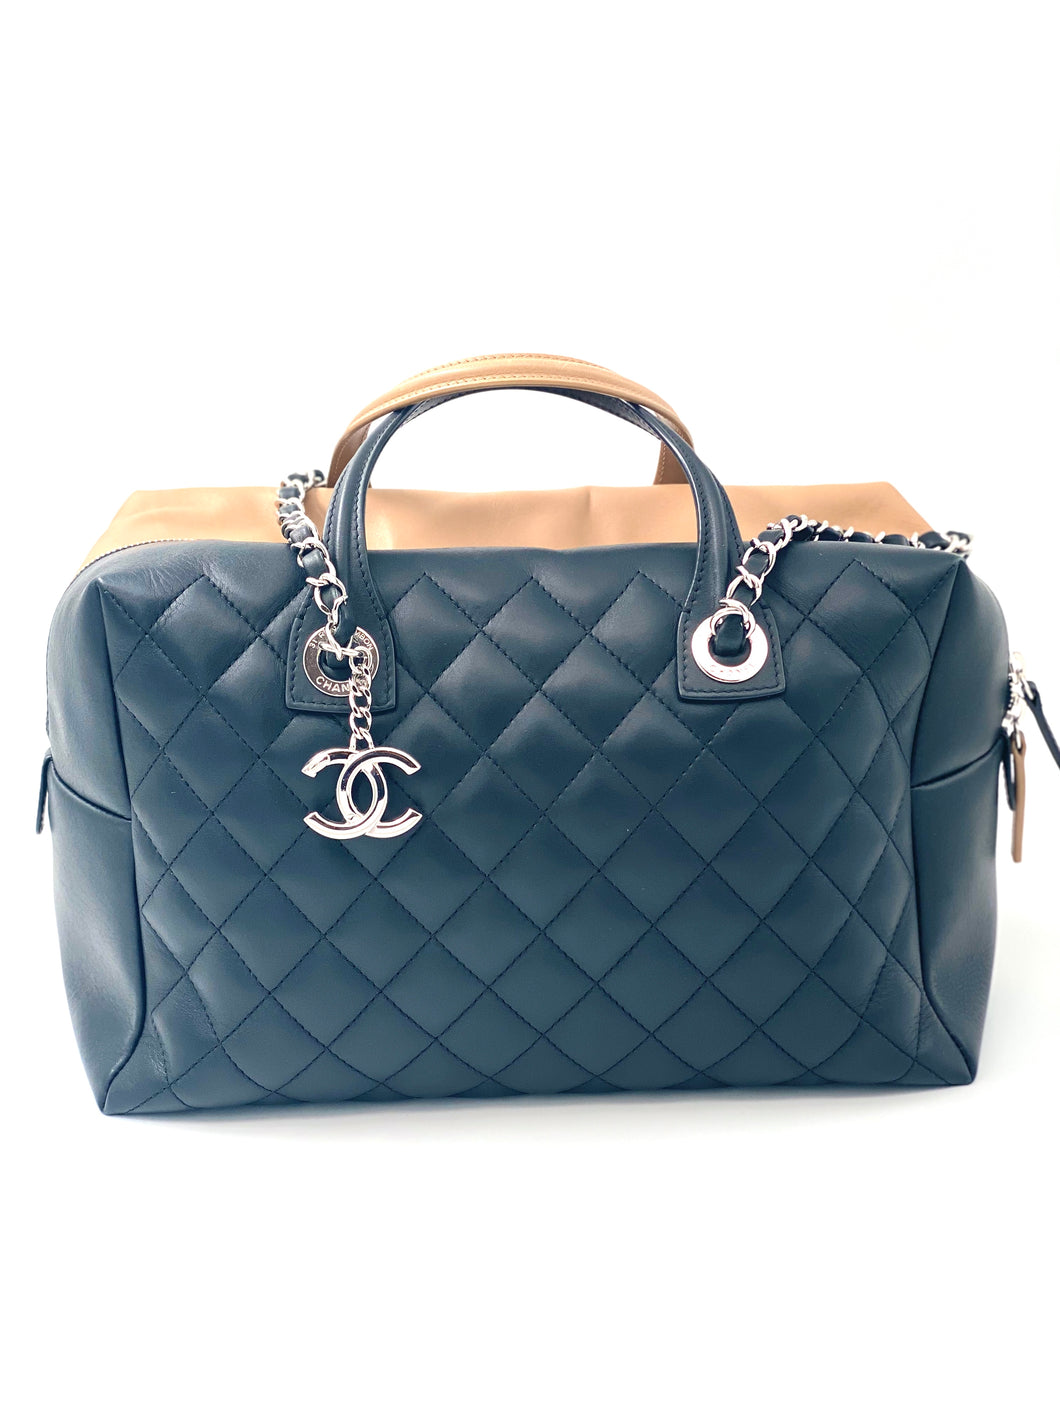 Chanel Calfskin Quilted Bi-Color Feather Weight Bowling Bag Black Beige